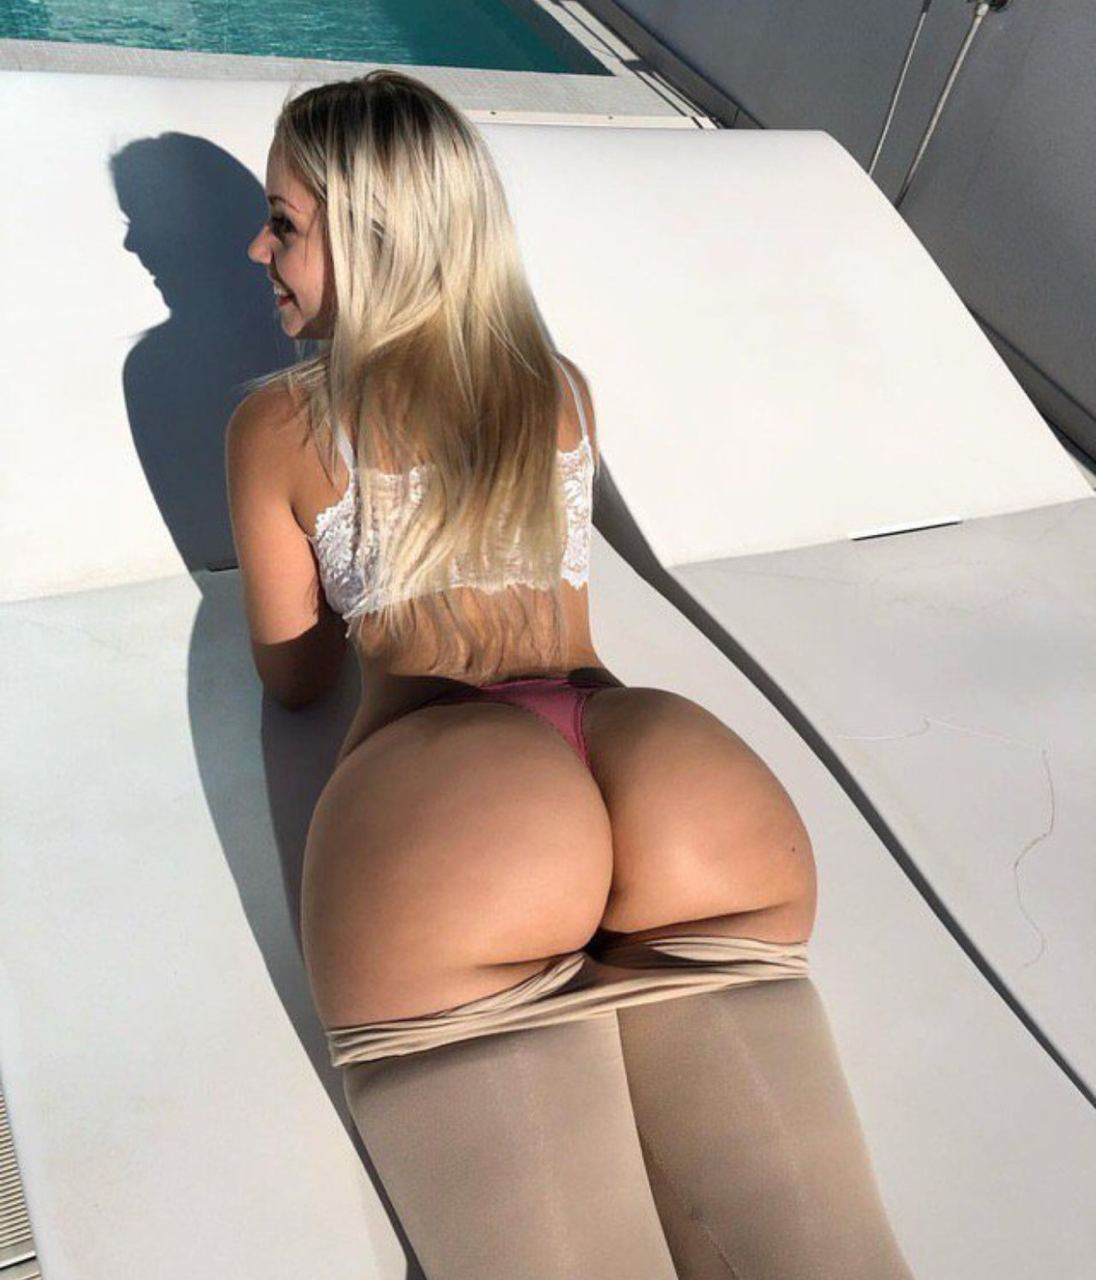 PC.Pack Porn OnlyFans Leaked Nudes 43